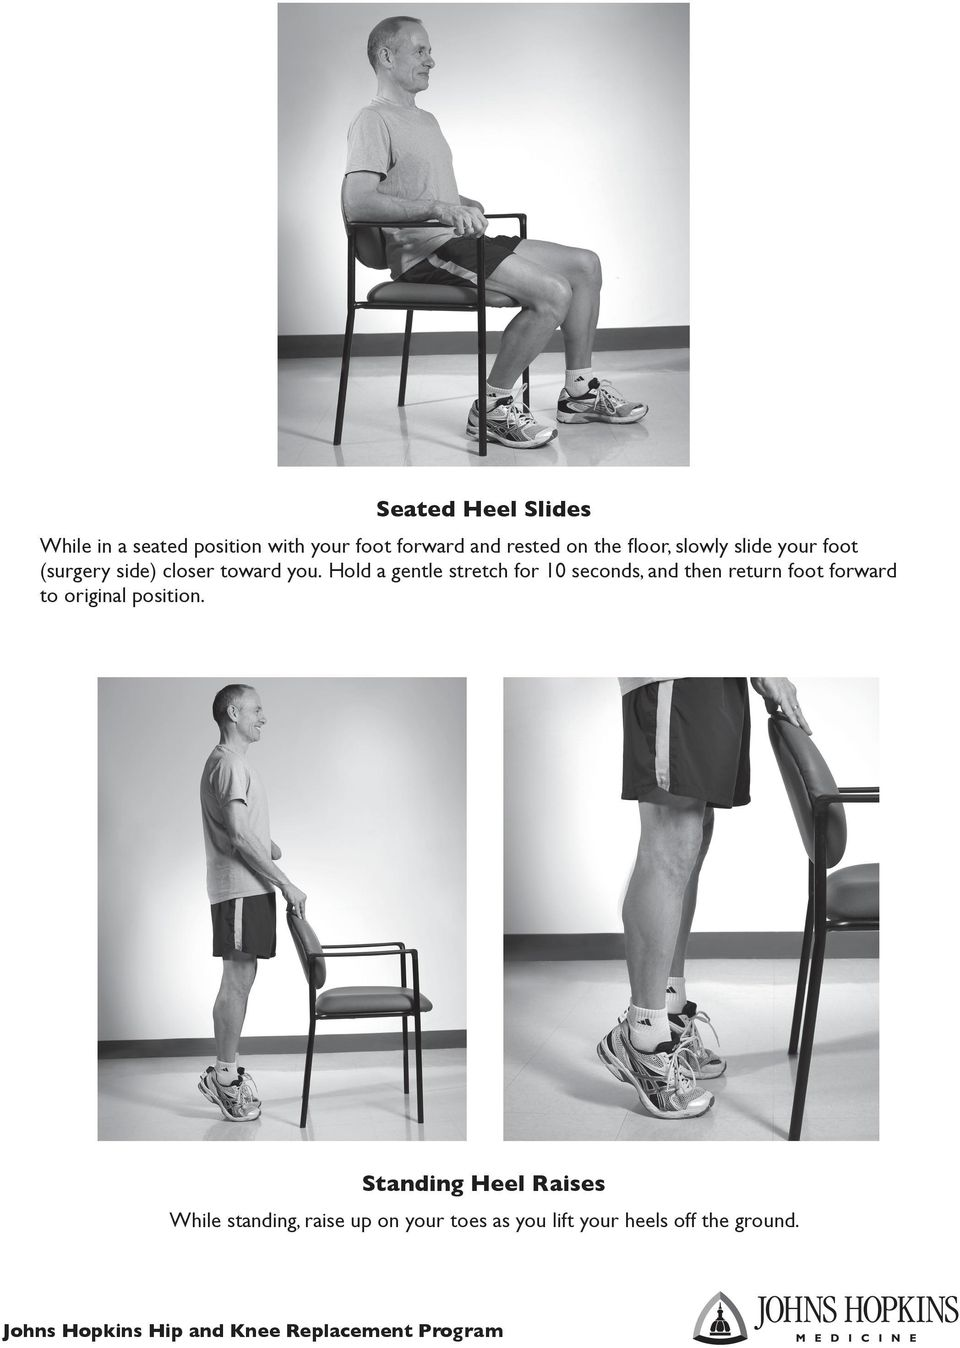 Hold a gentle stretch for 10 seconds, and then return foot forward to original